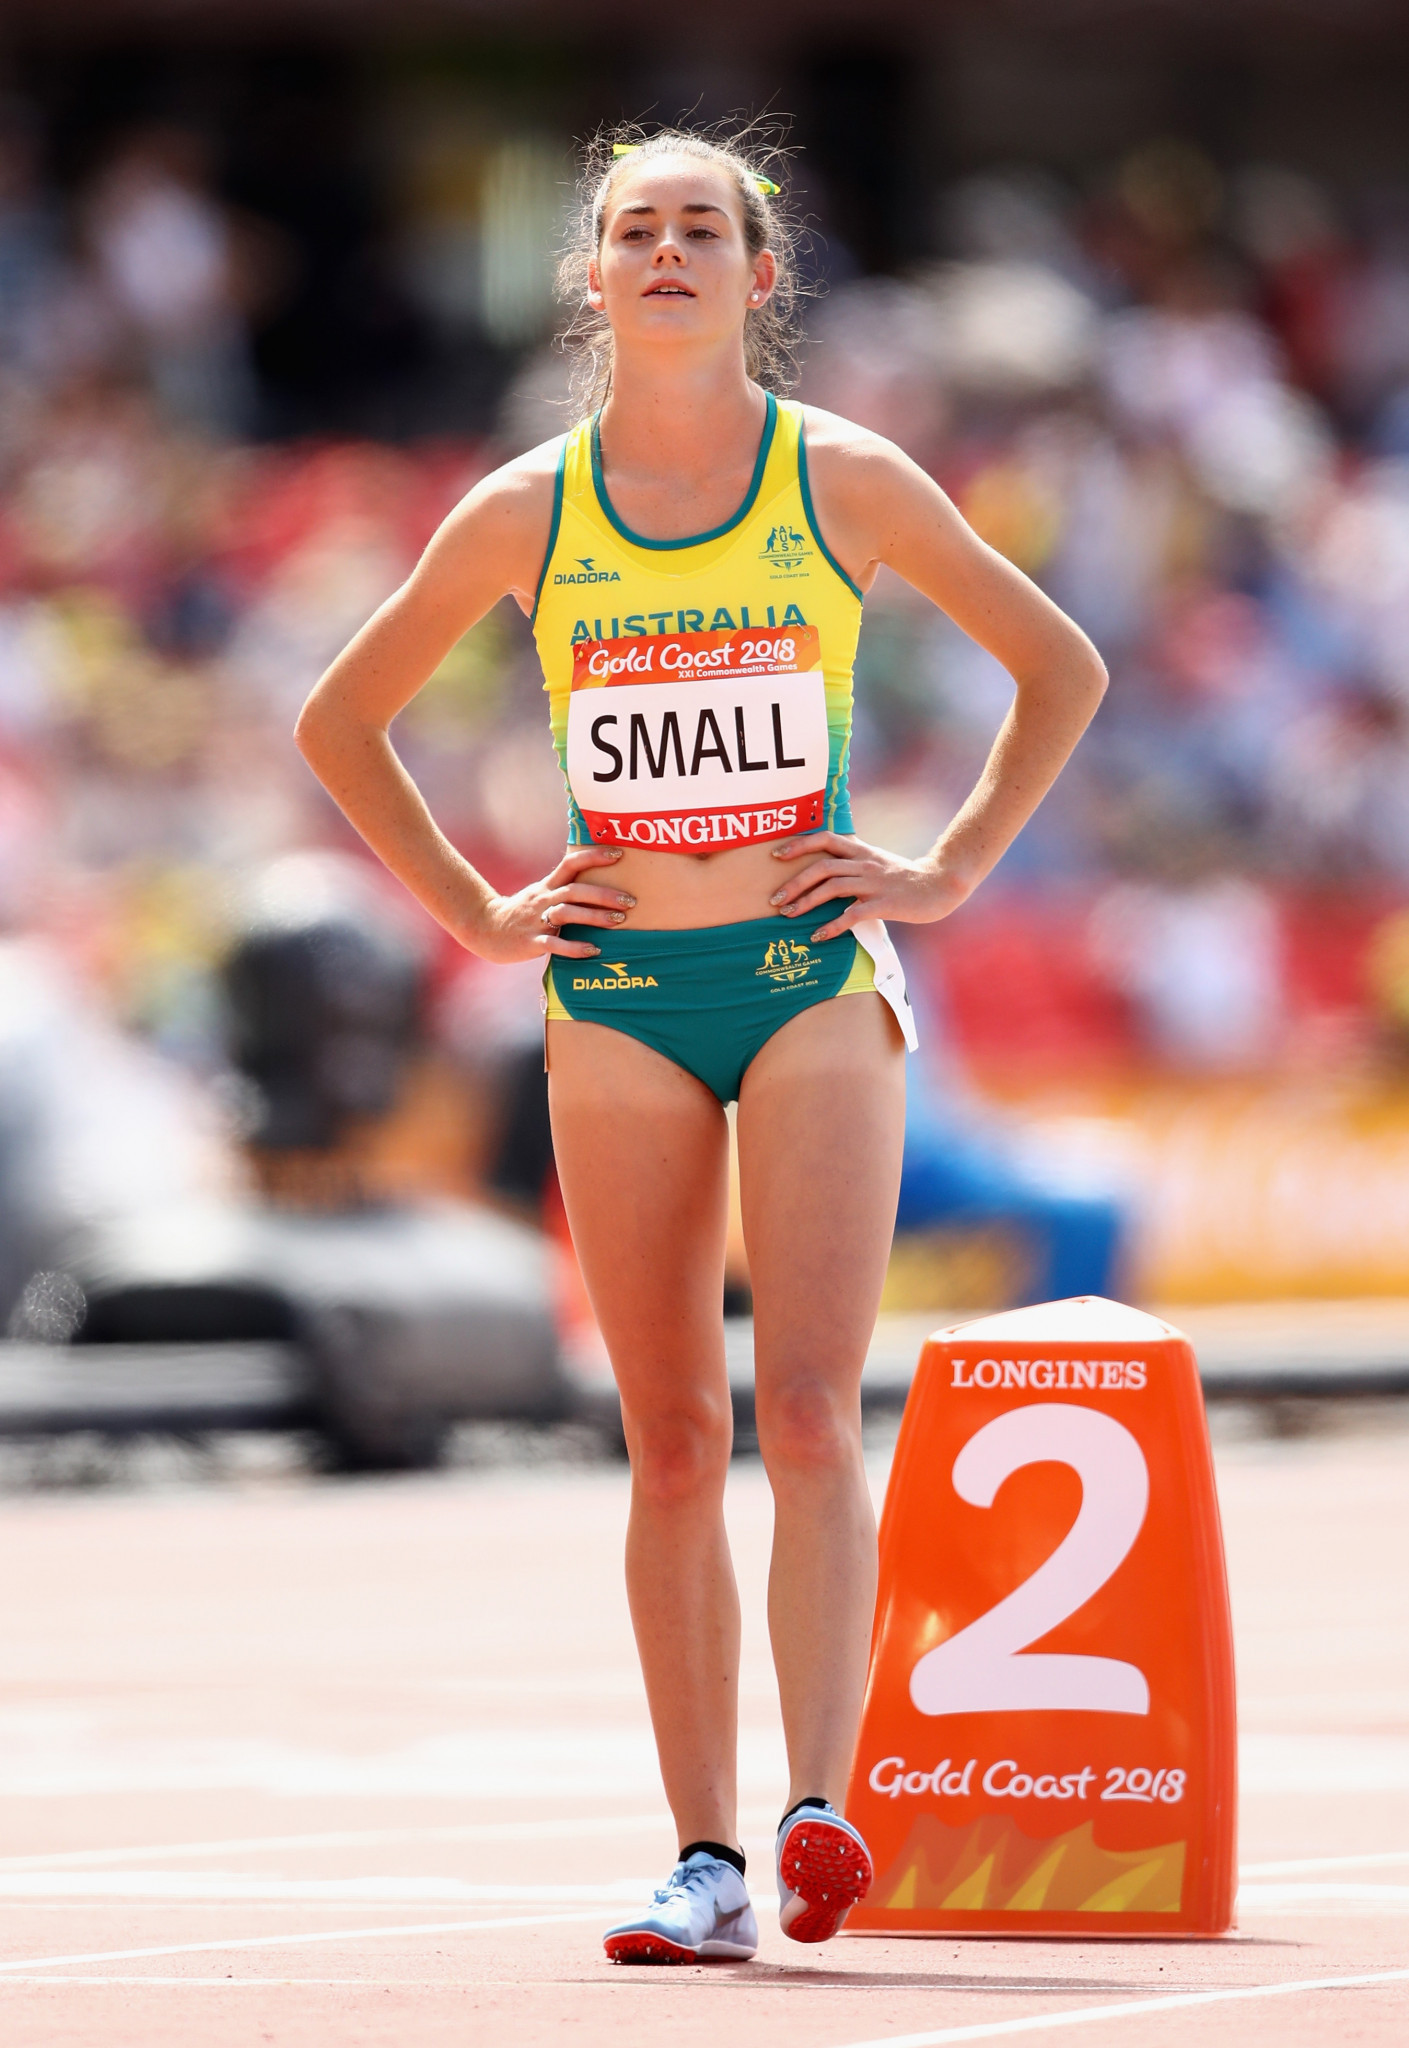 Keely Small represented Australia in the 800 meres at this year's Commonwealth Games in the Gold Coast ©Getty Images